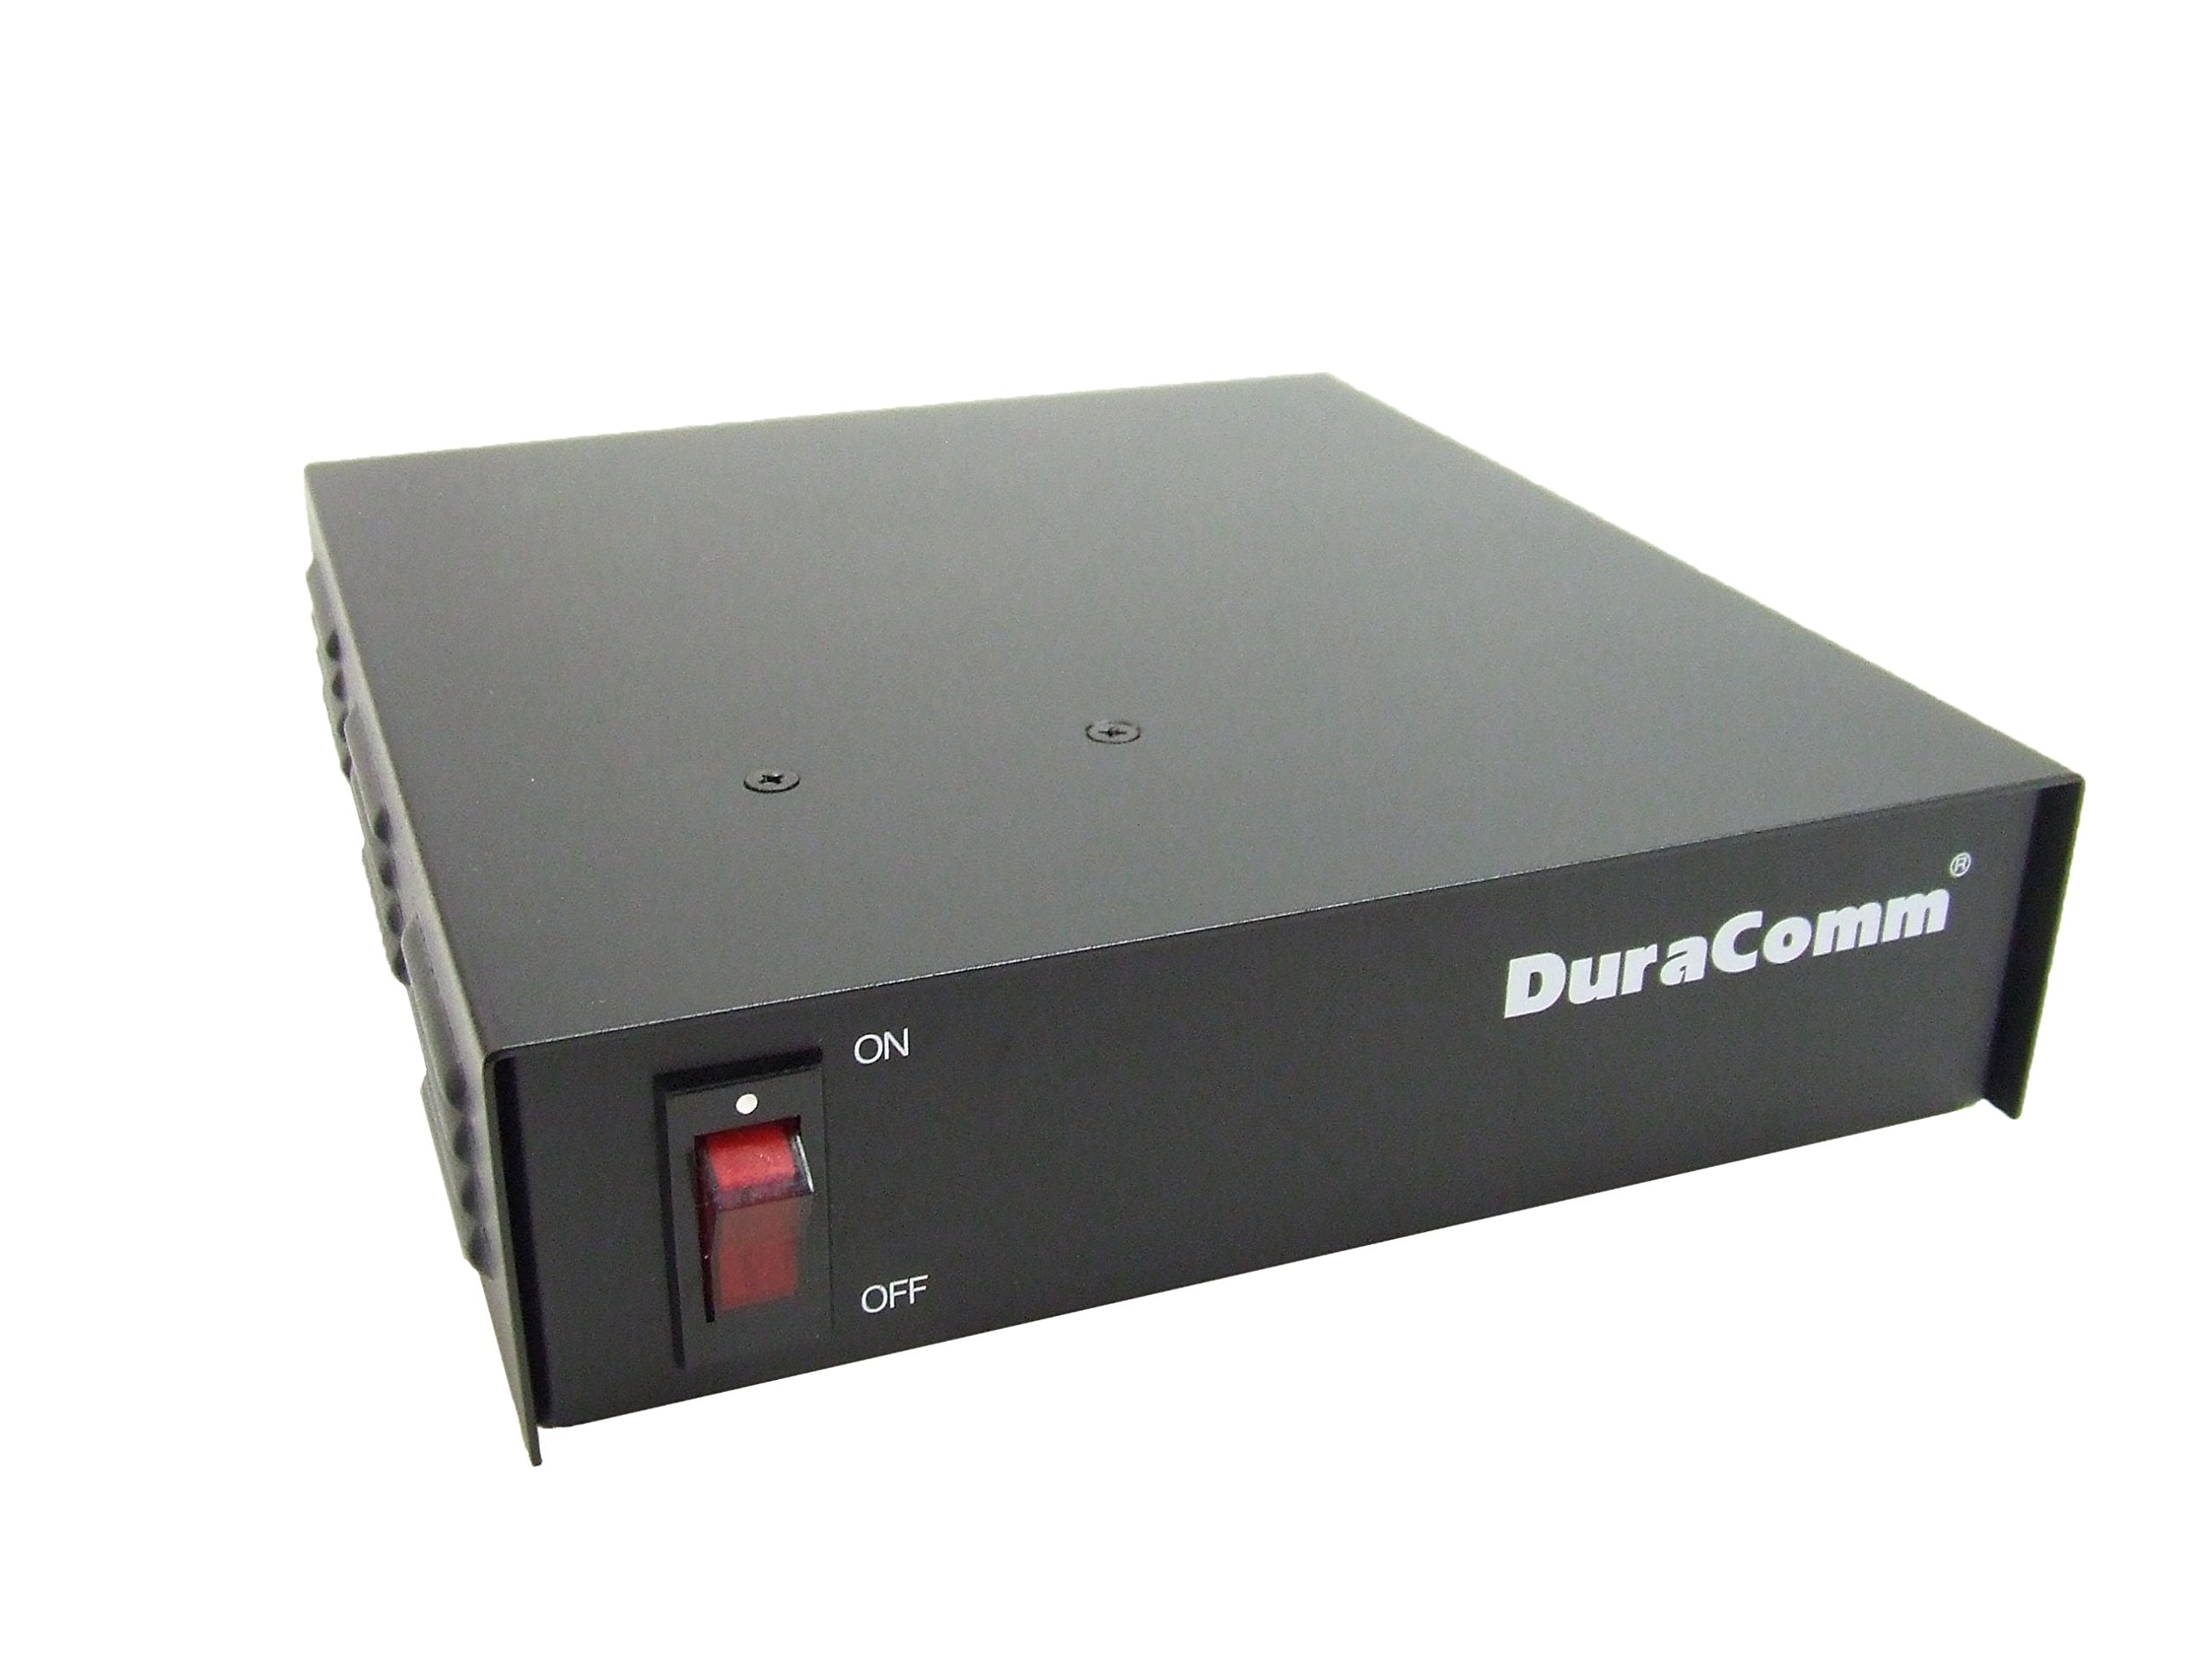 DuraComm LP-25 Switching Desktop Power Supply